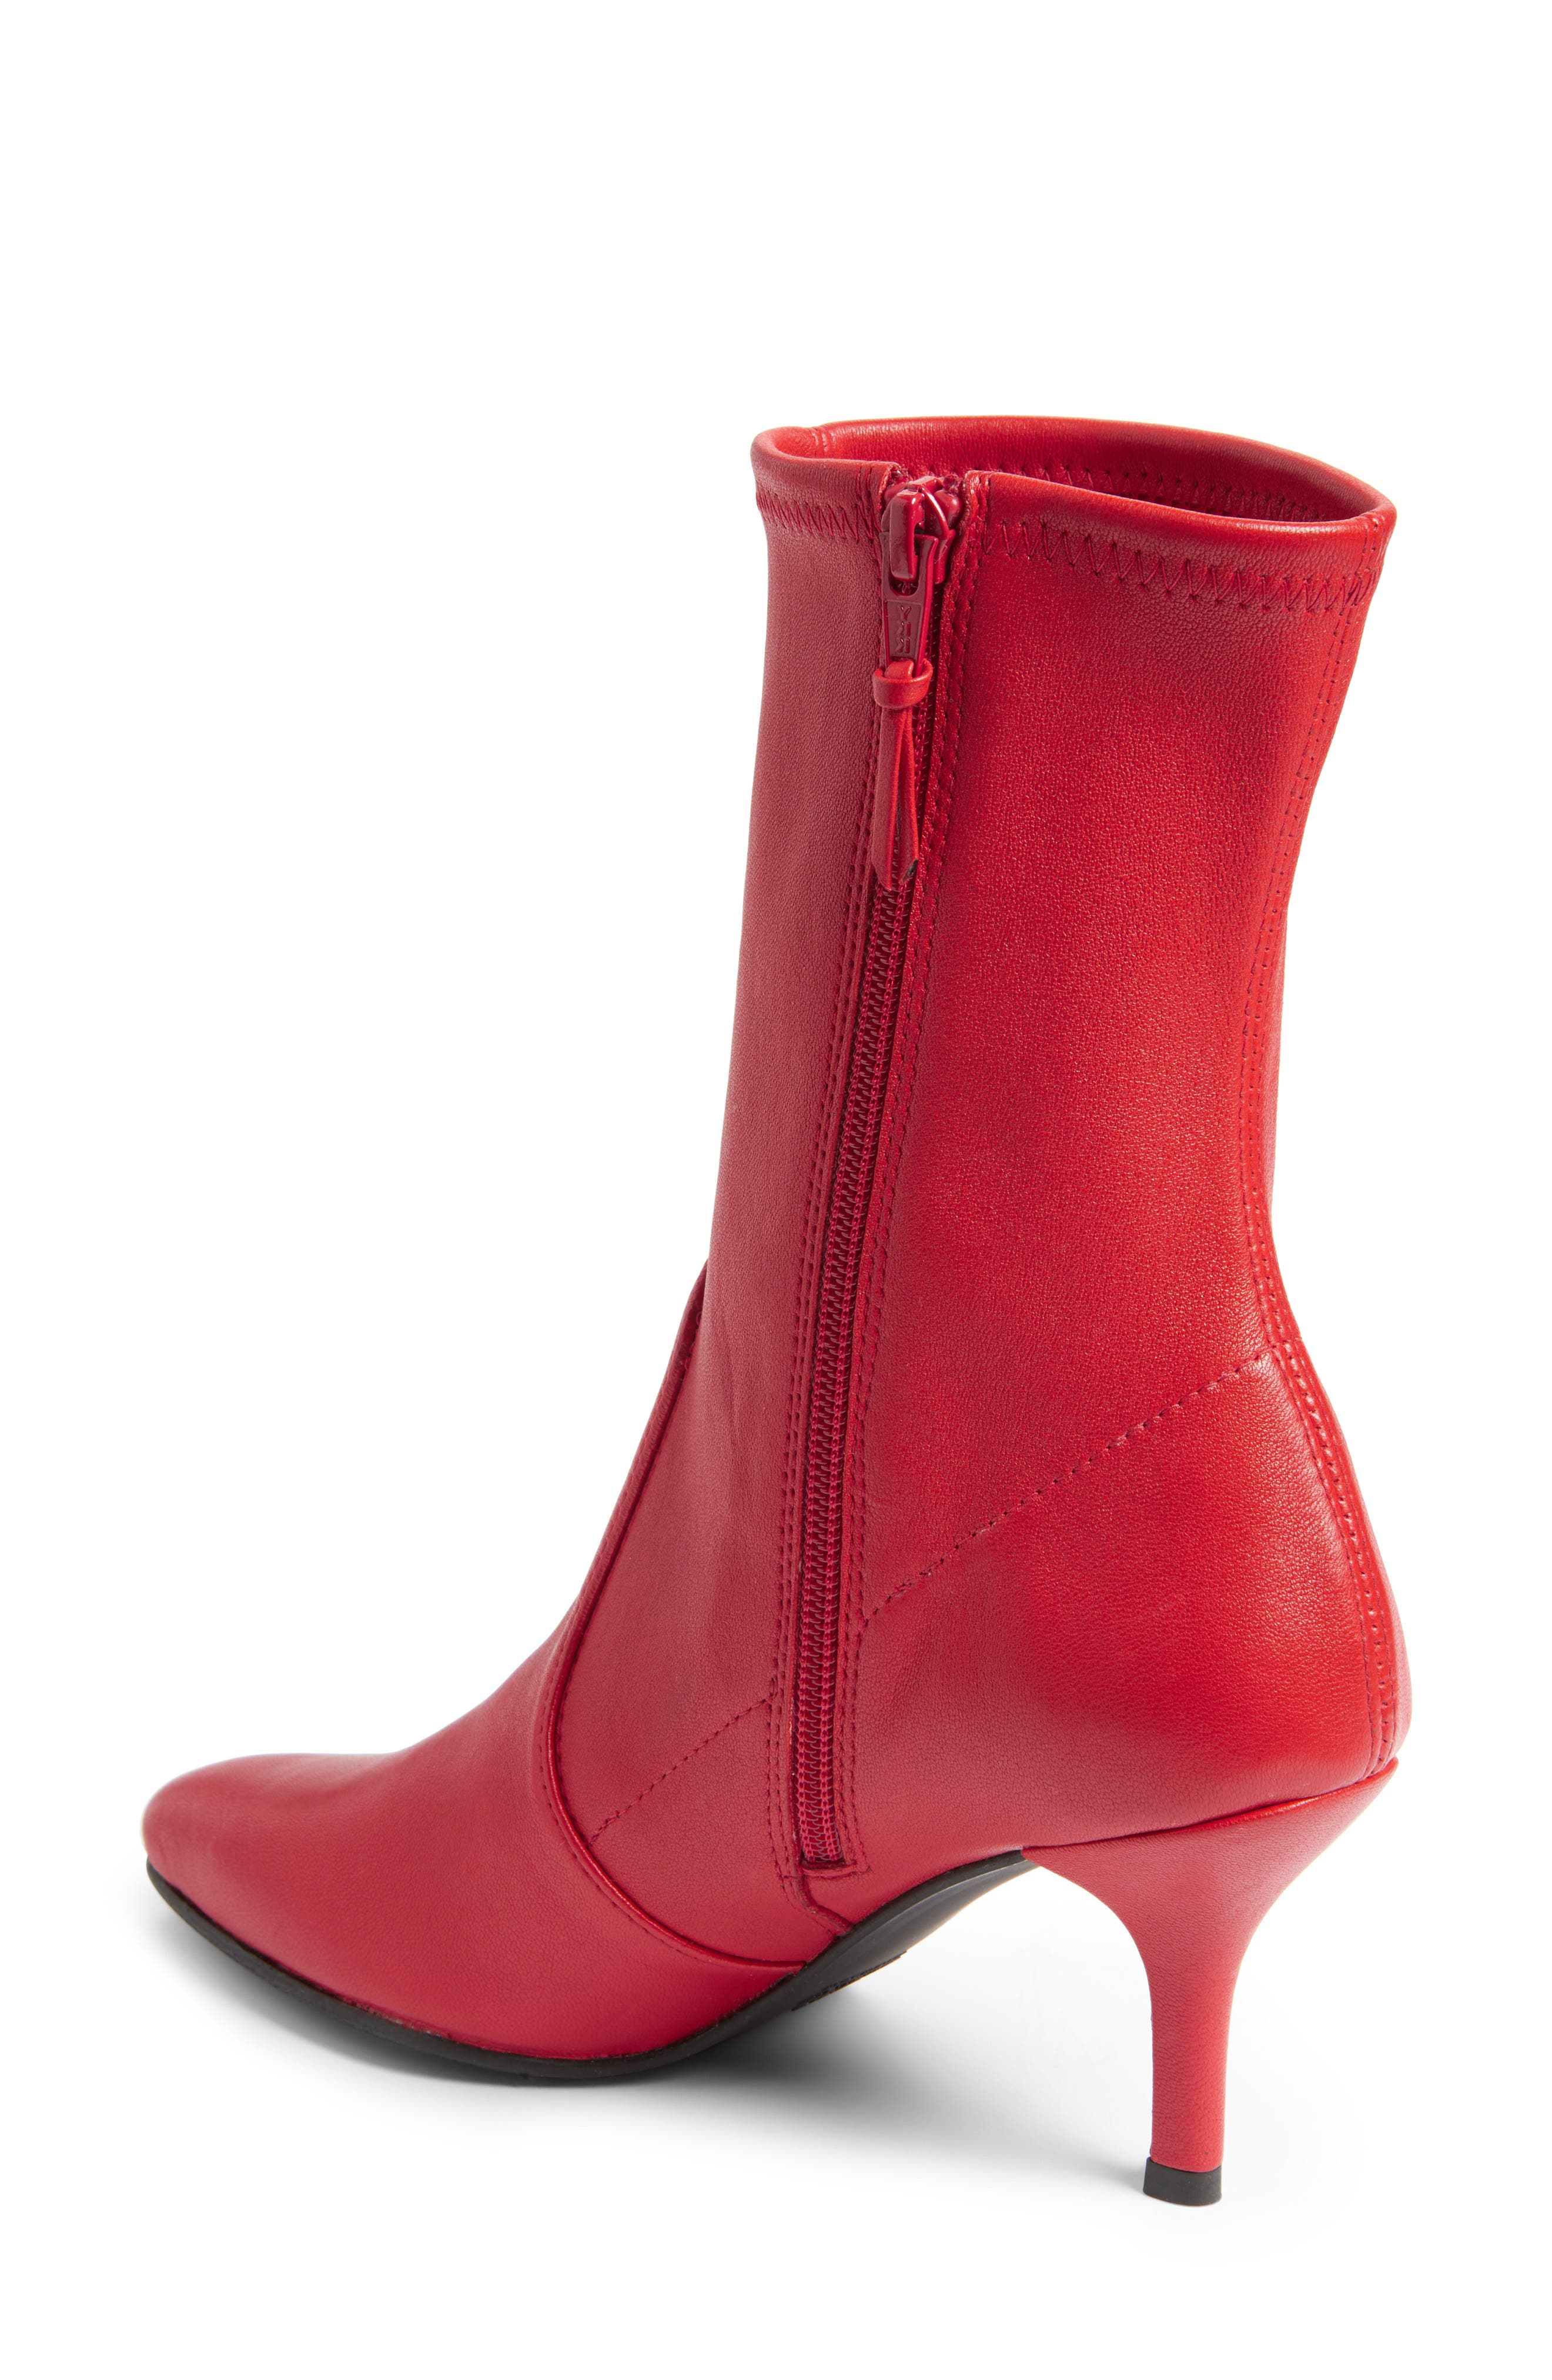 Cling Stretch Bootie,                             Alternate thumbnail 2, color,                             Red Plonge Stretch